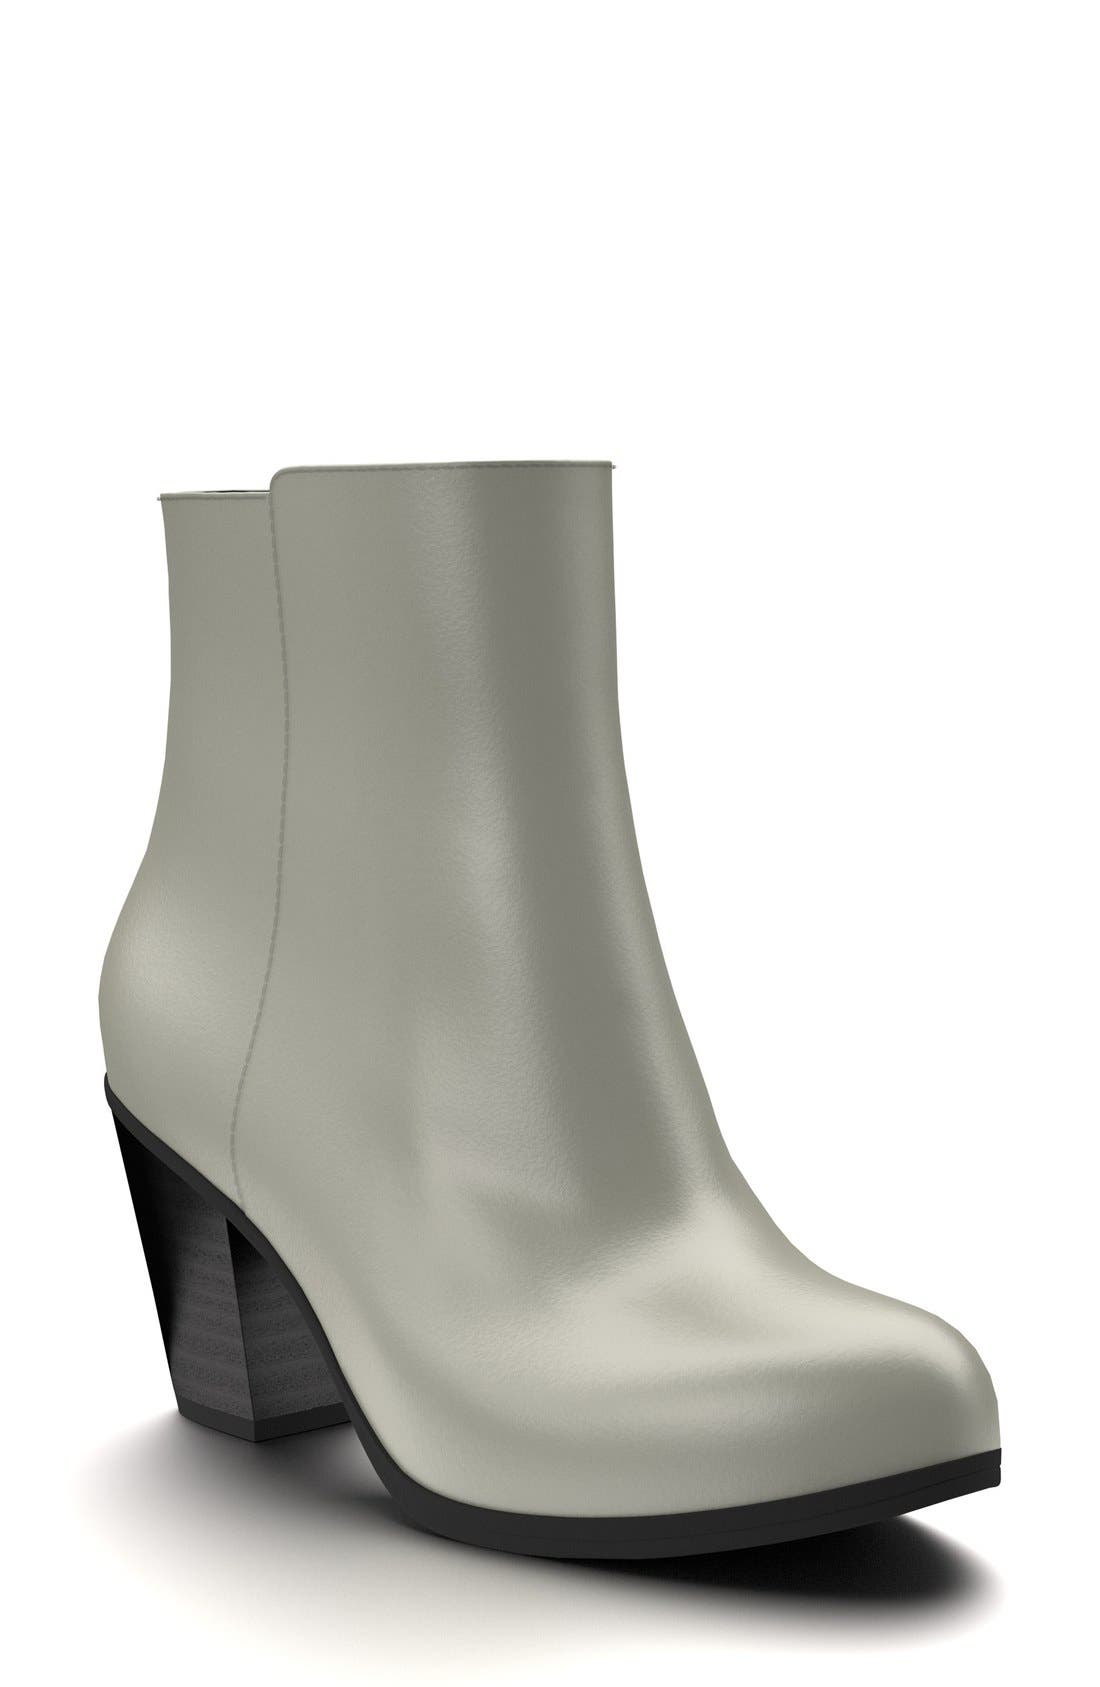 Main Image - Shoes of Prey Block Heel Bootie (Women)